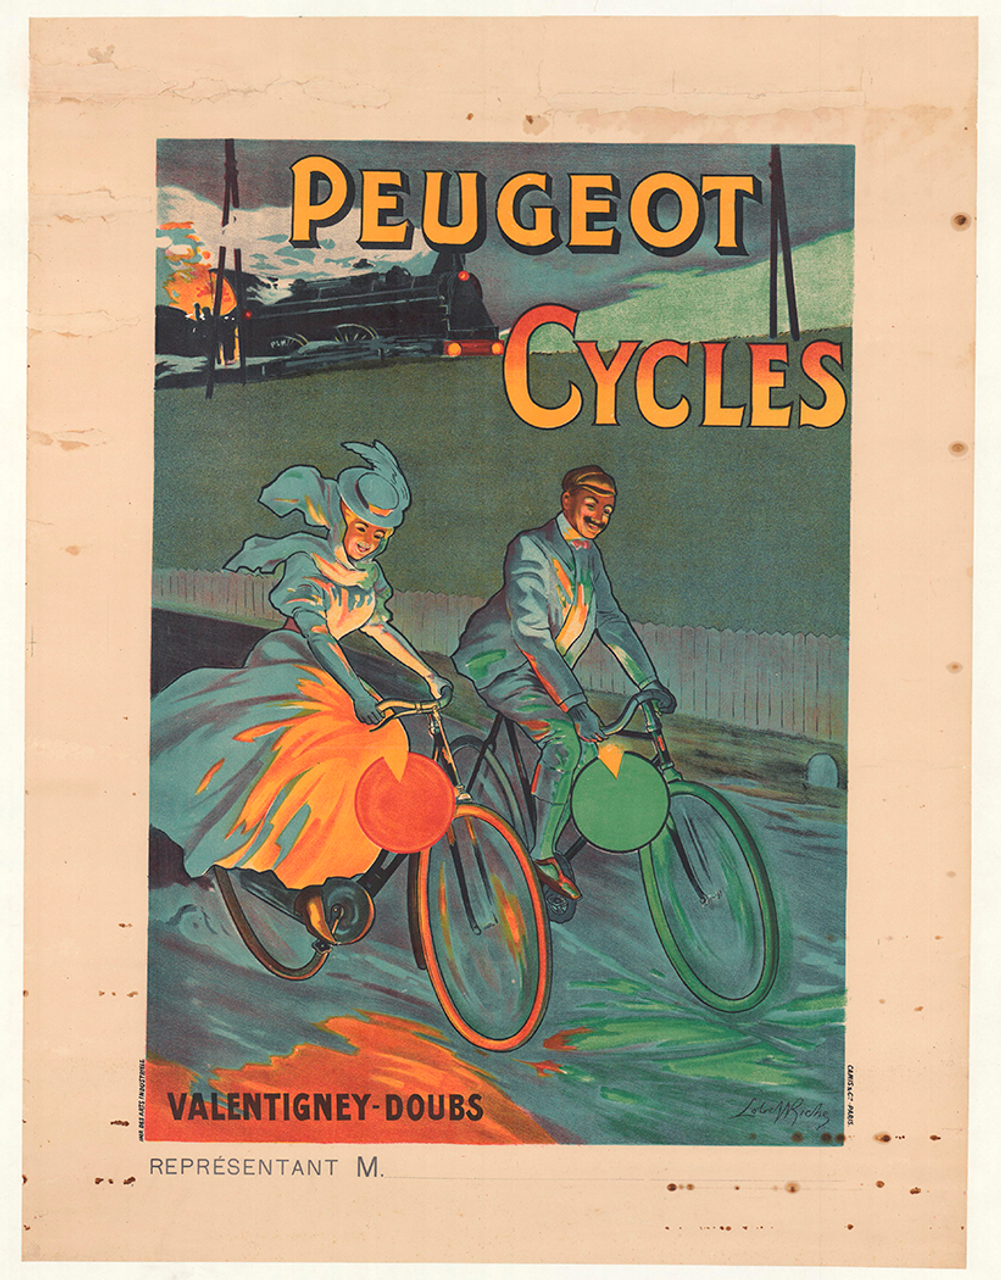 Peugeot Cycles Original Vintage Bicycle Poster by Lobel-Riche